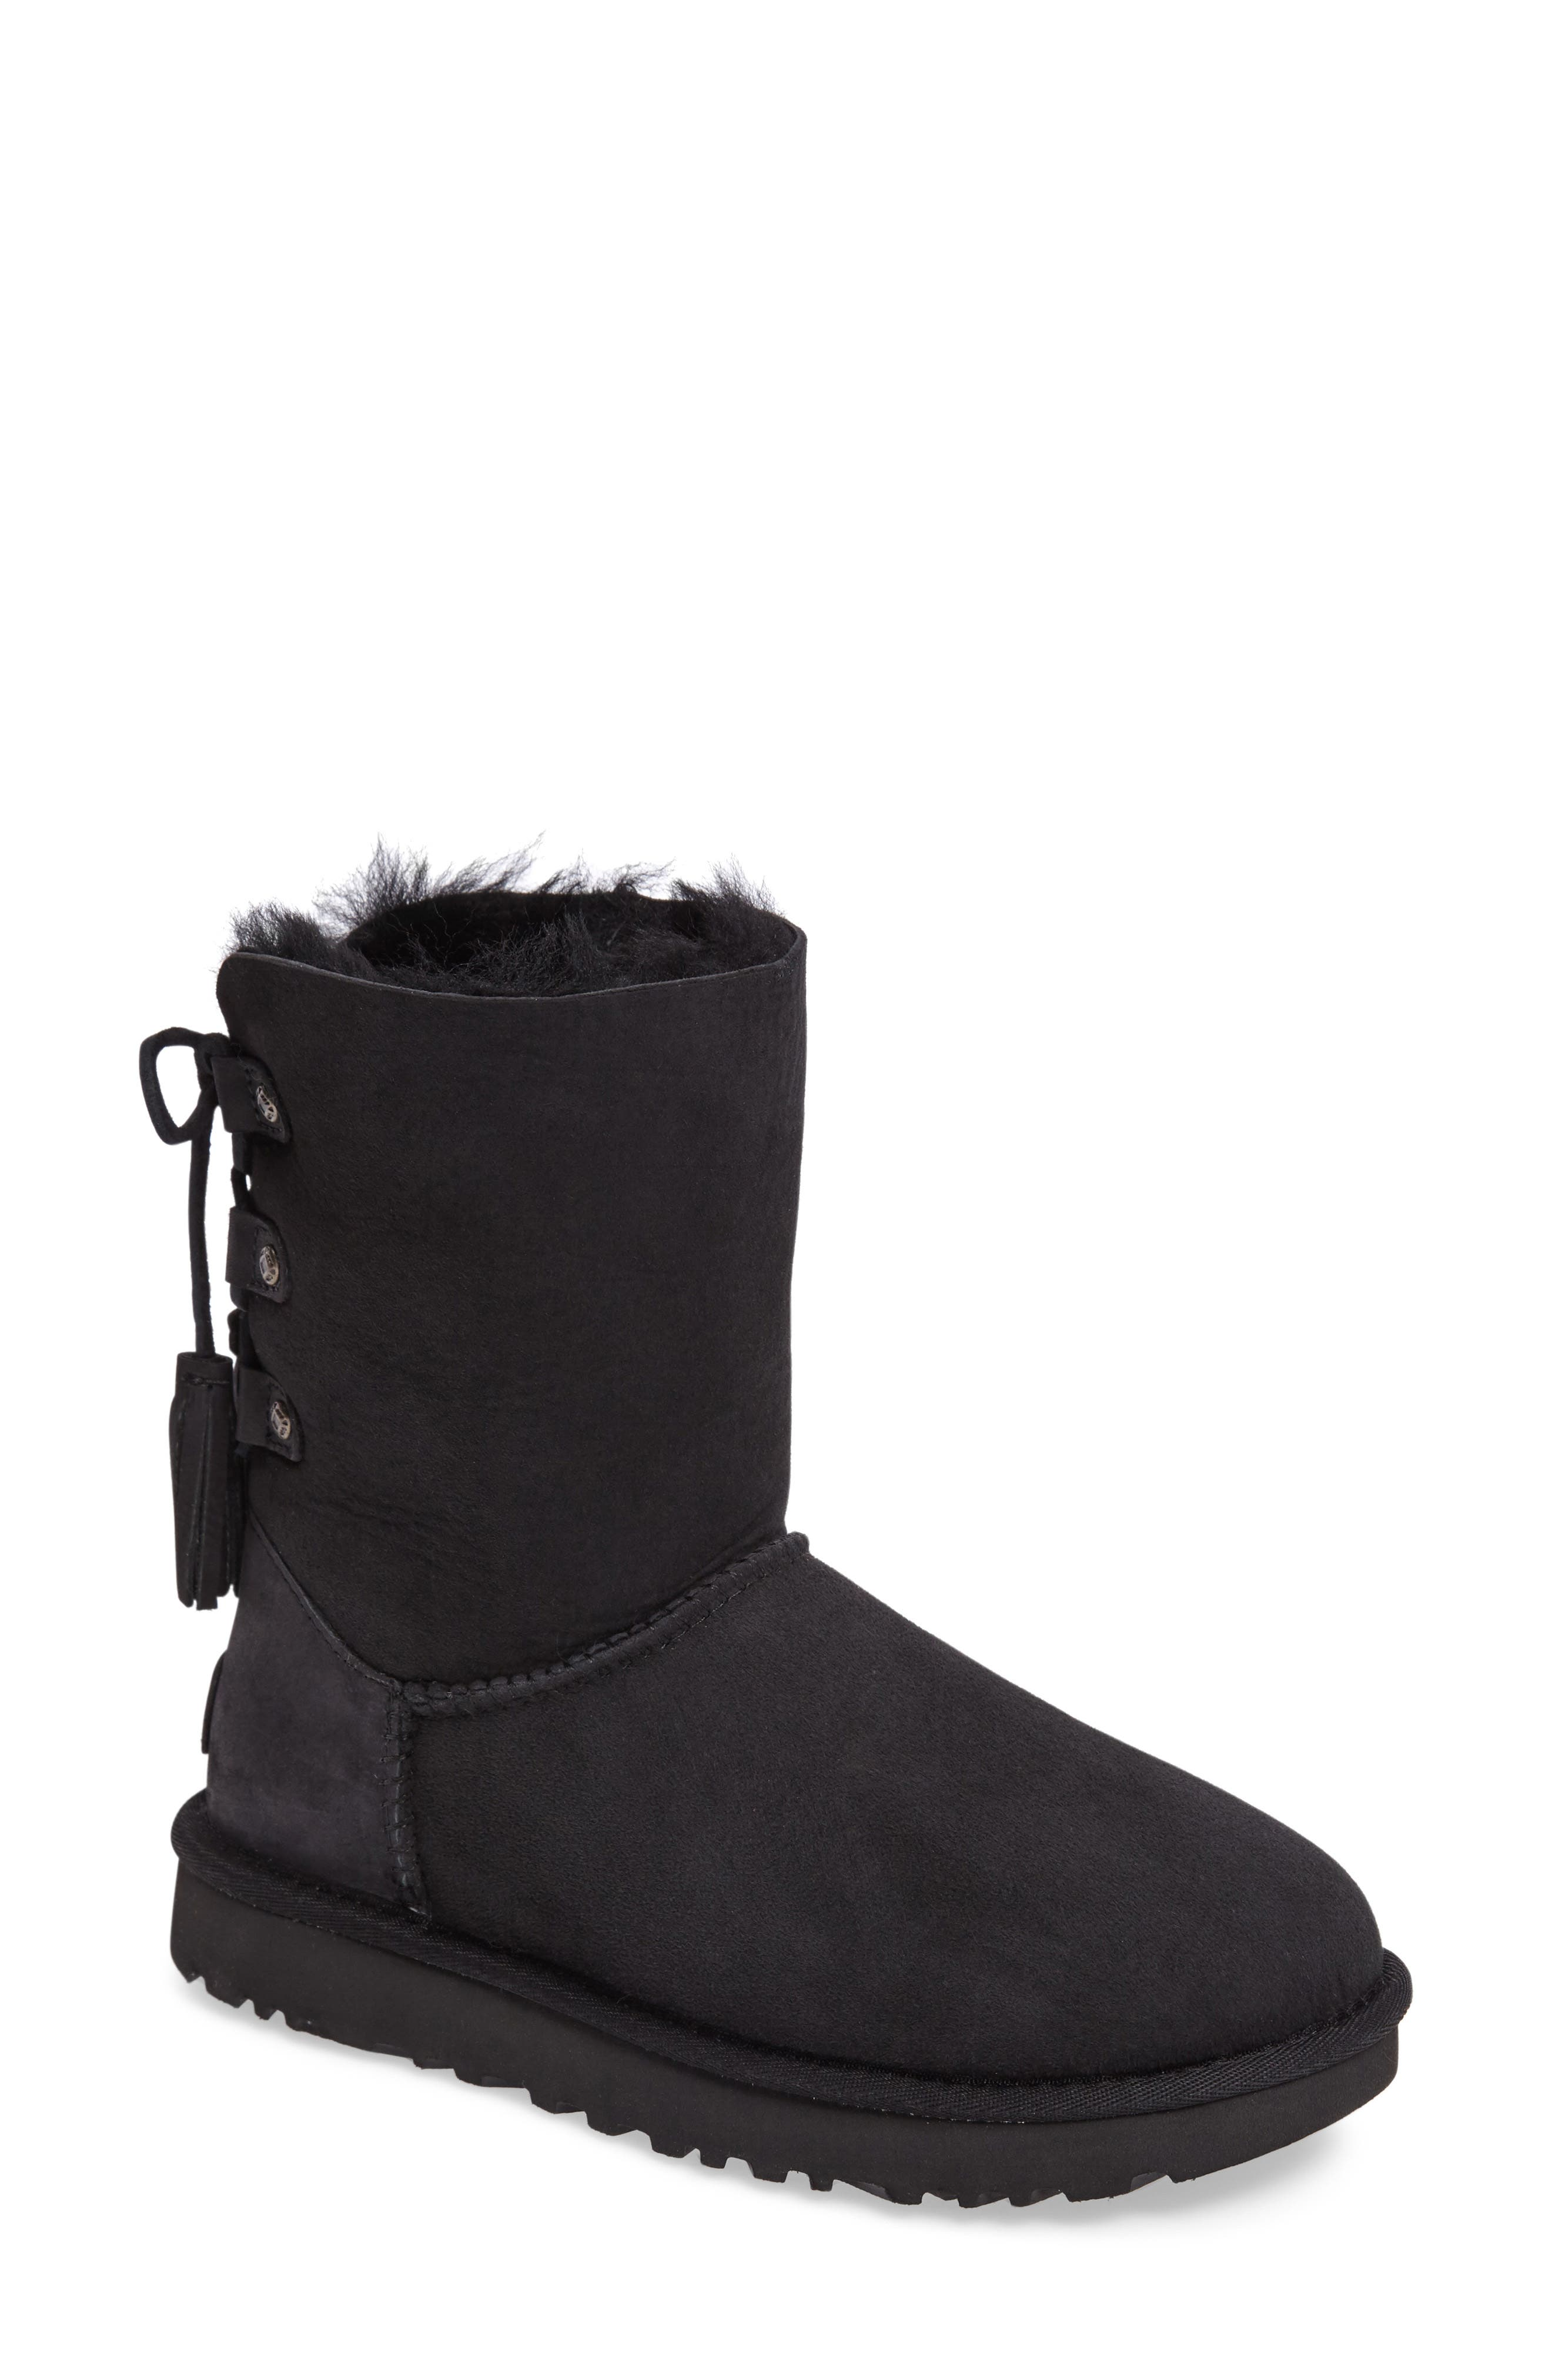 Kristabelle Boot,                         Main,                         color, 001